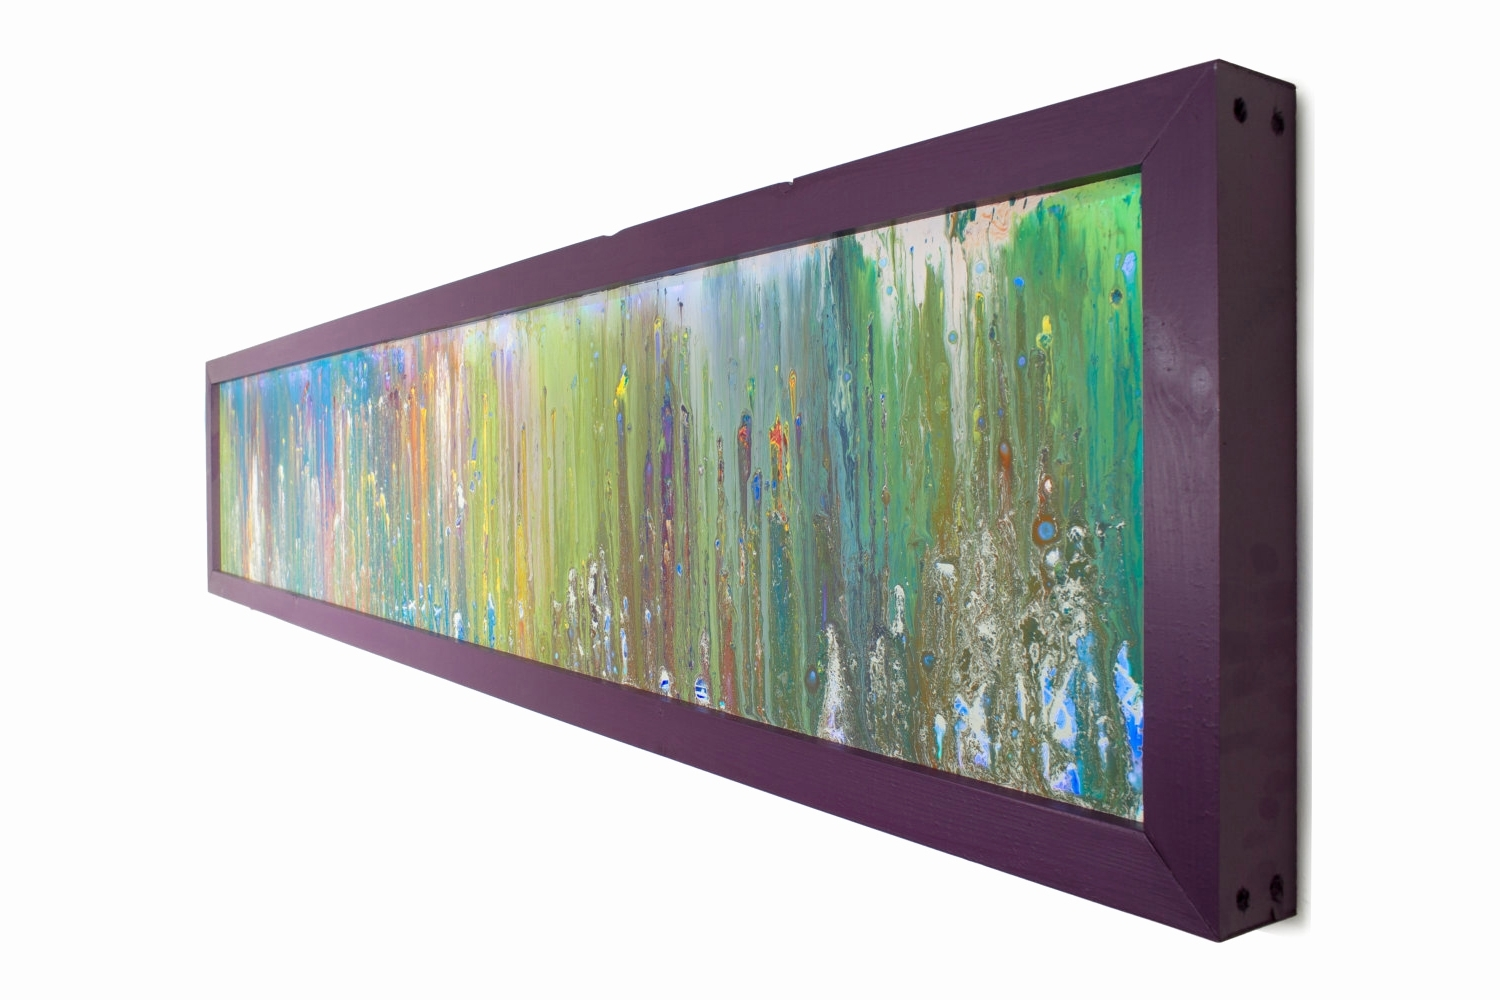 Best And Newest Modern Glass Wall Art With Regard To 7 Fav Contemporary Glass Wall Art (View 4 of 15)